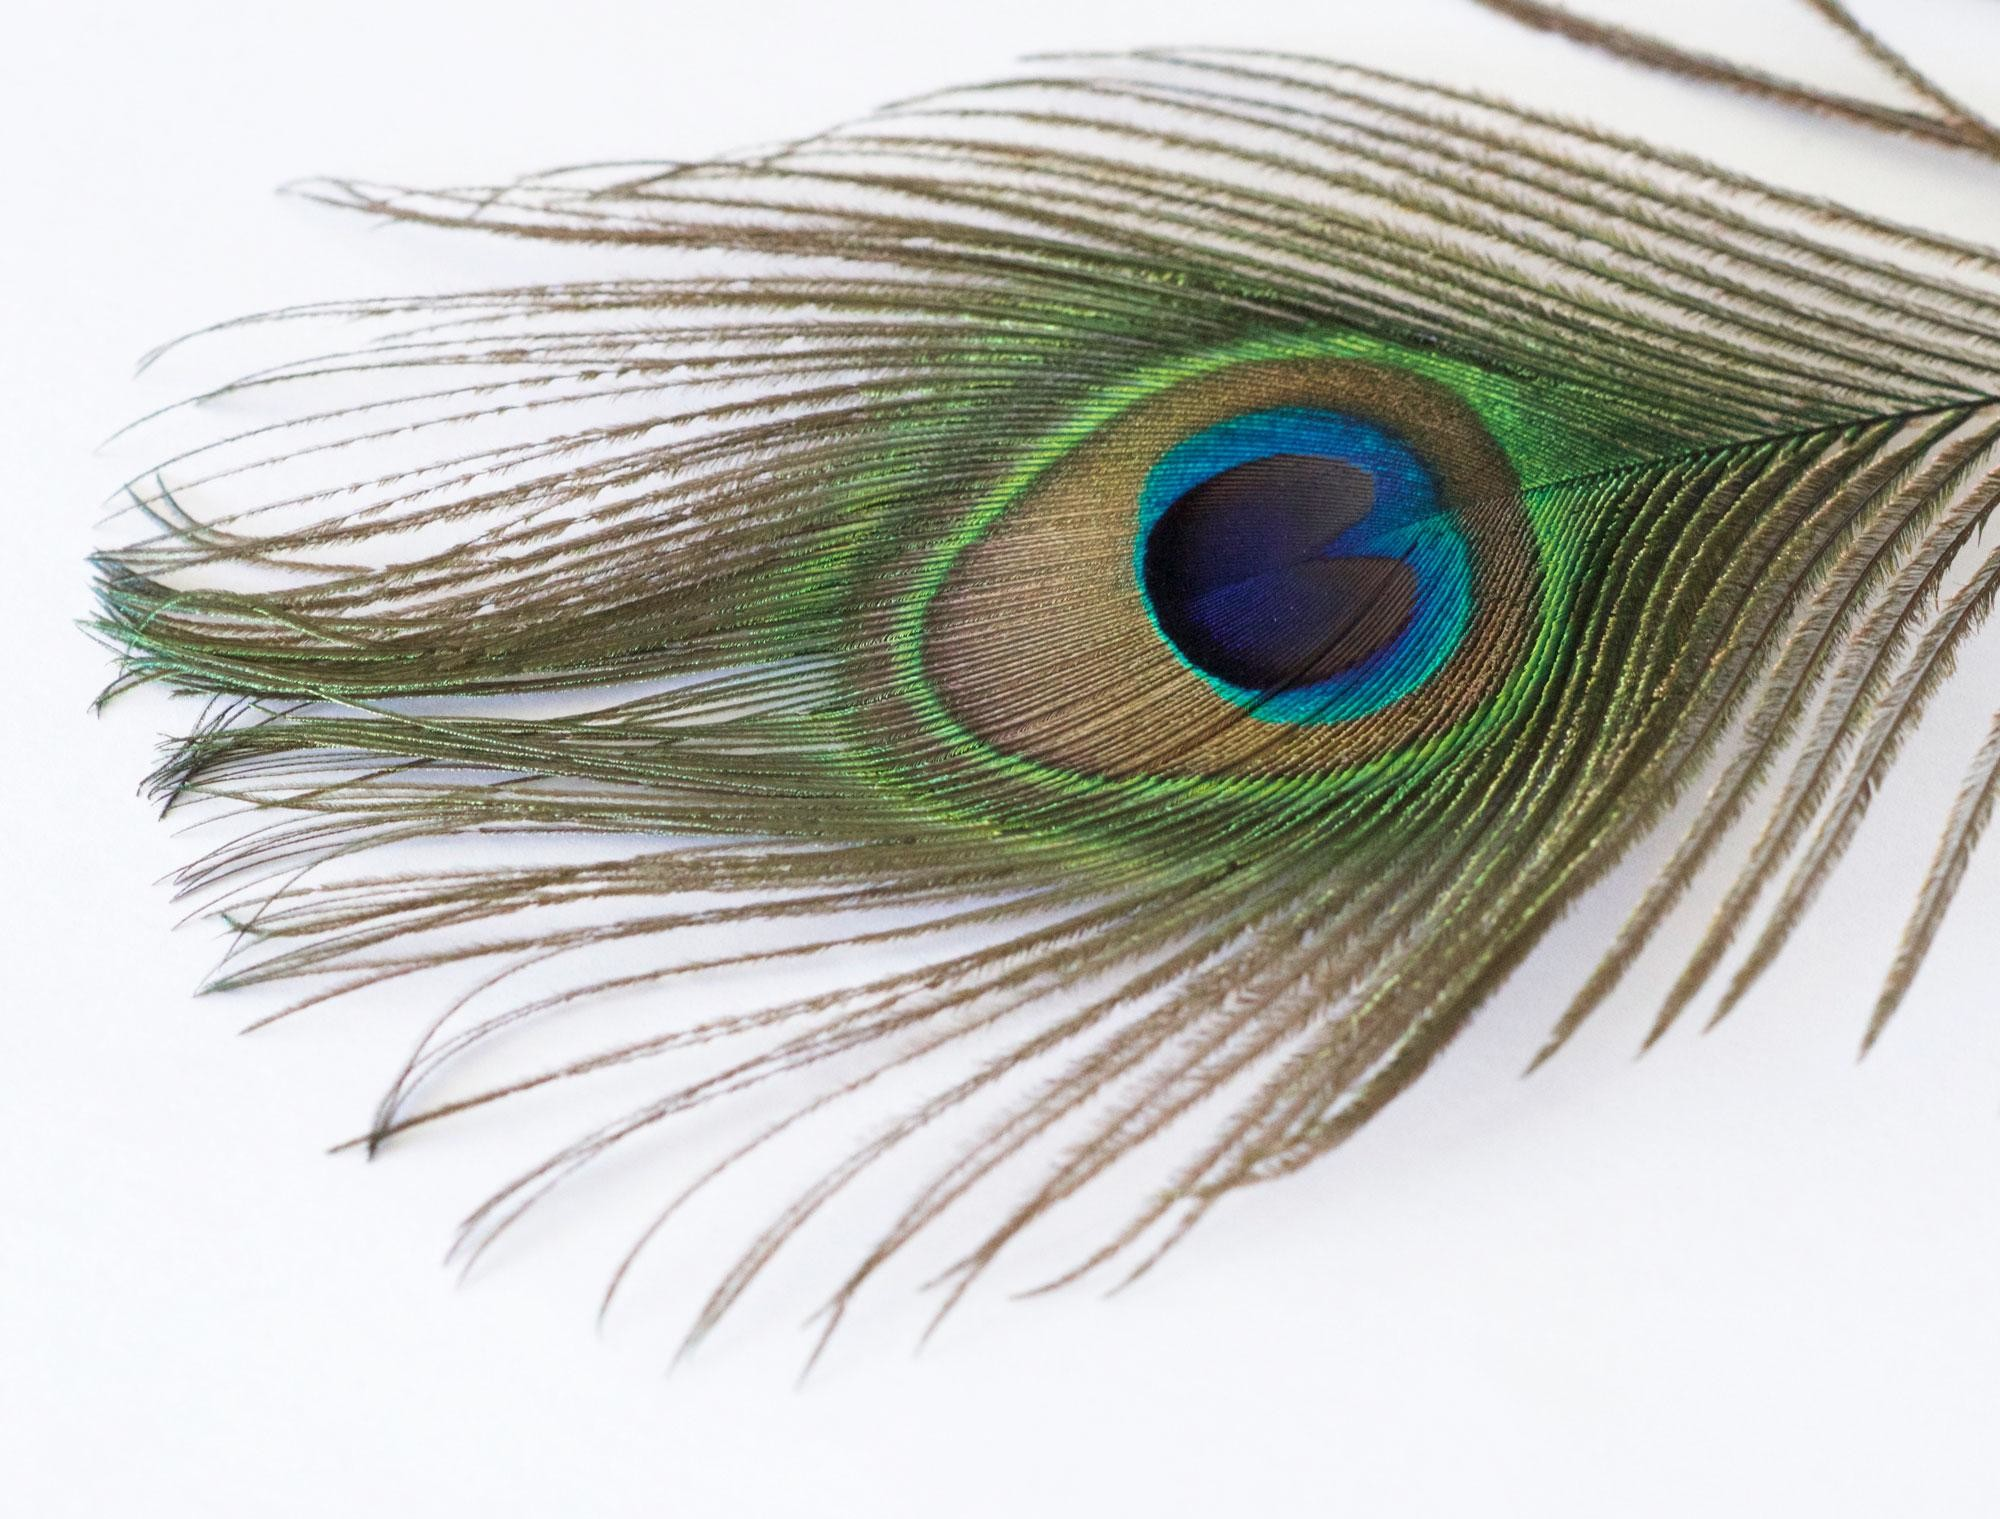 2000x1519 Peacock Feather